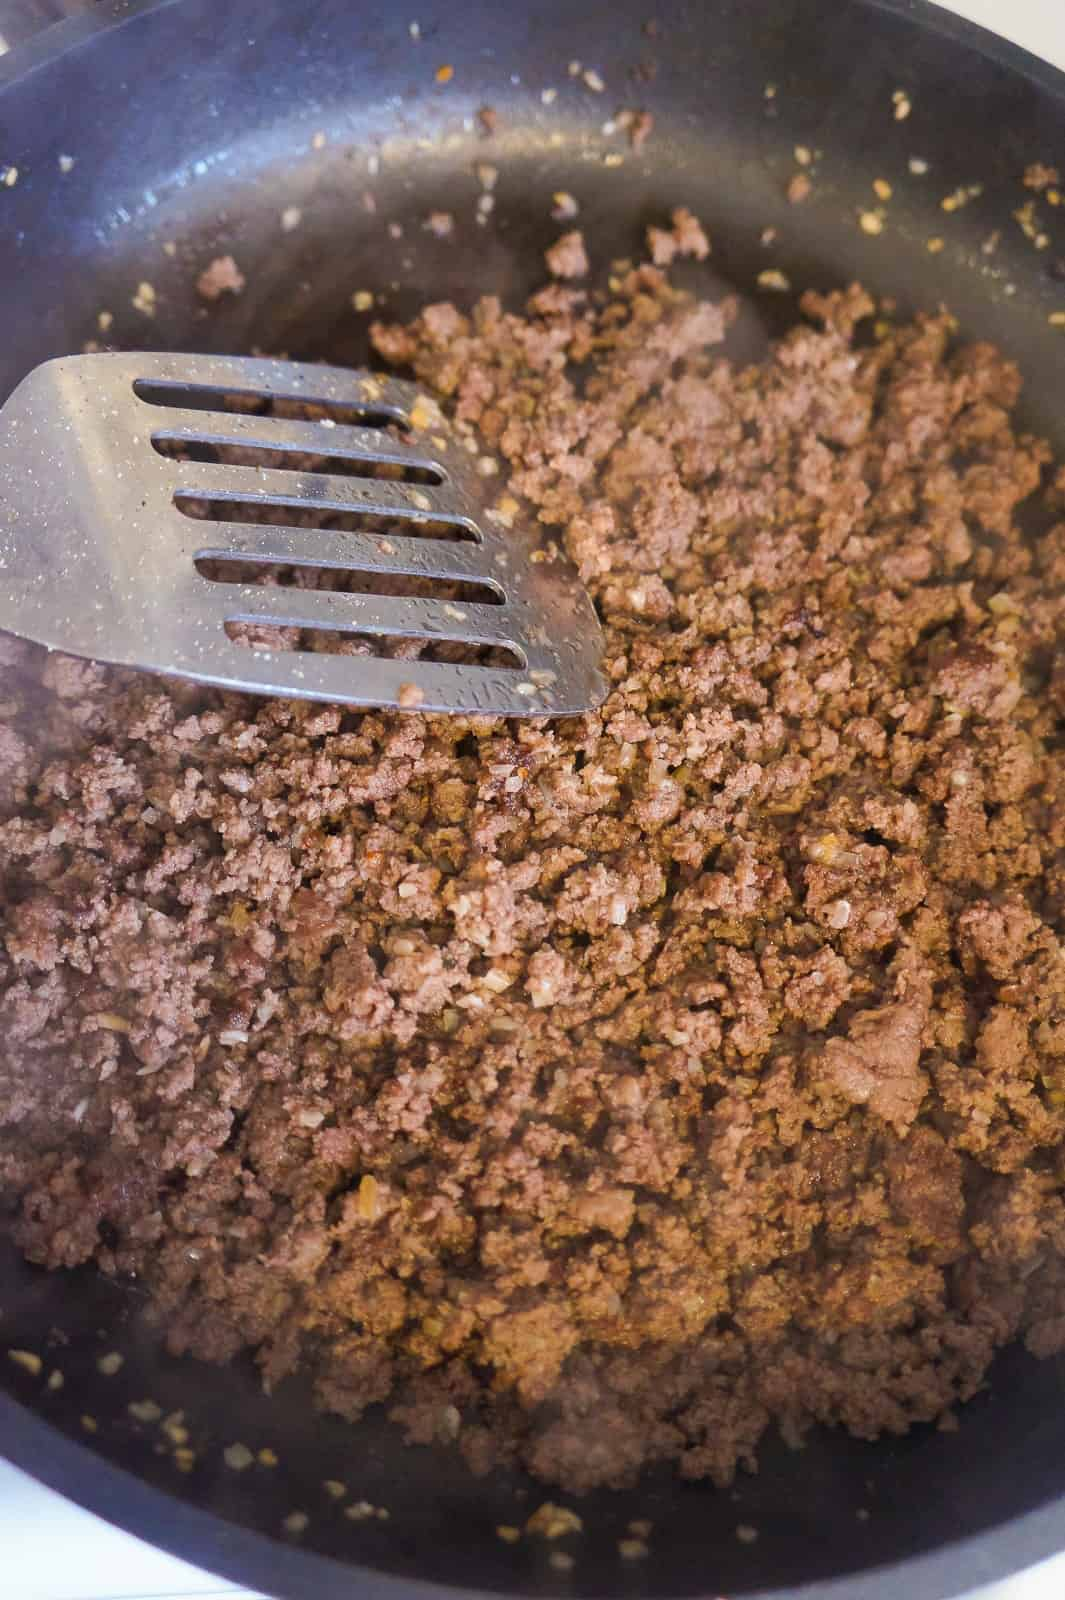 cooked ground beef in frying pan